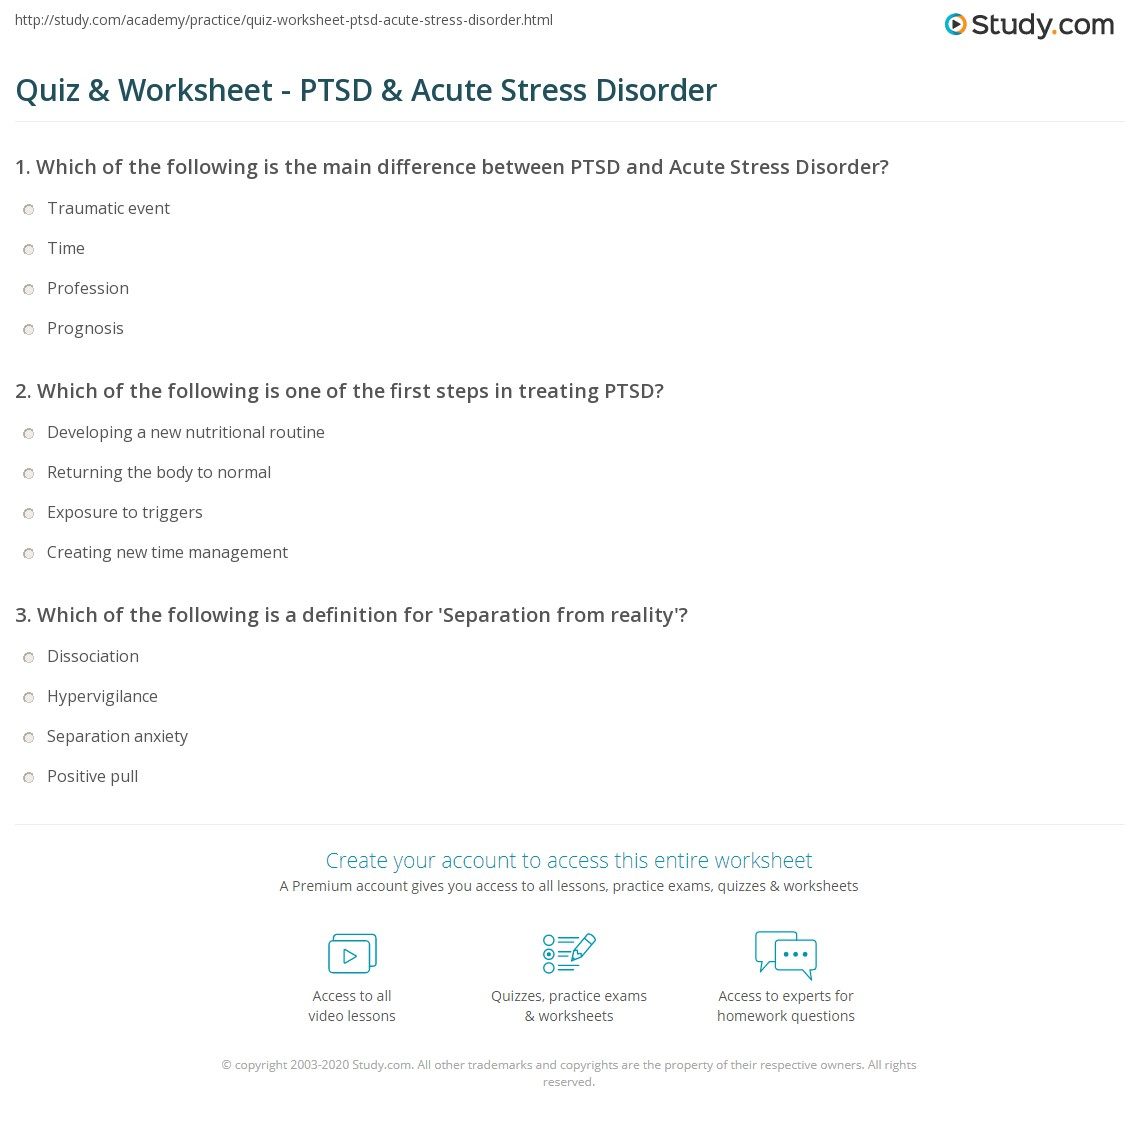 Quiz & Worksheet - PTSD & Acute Stress Disorder | Study.com